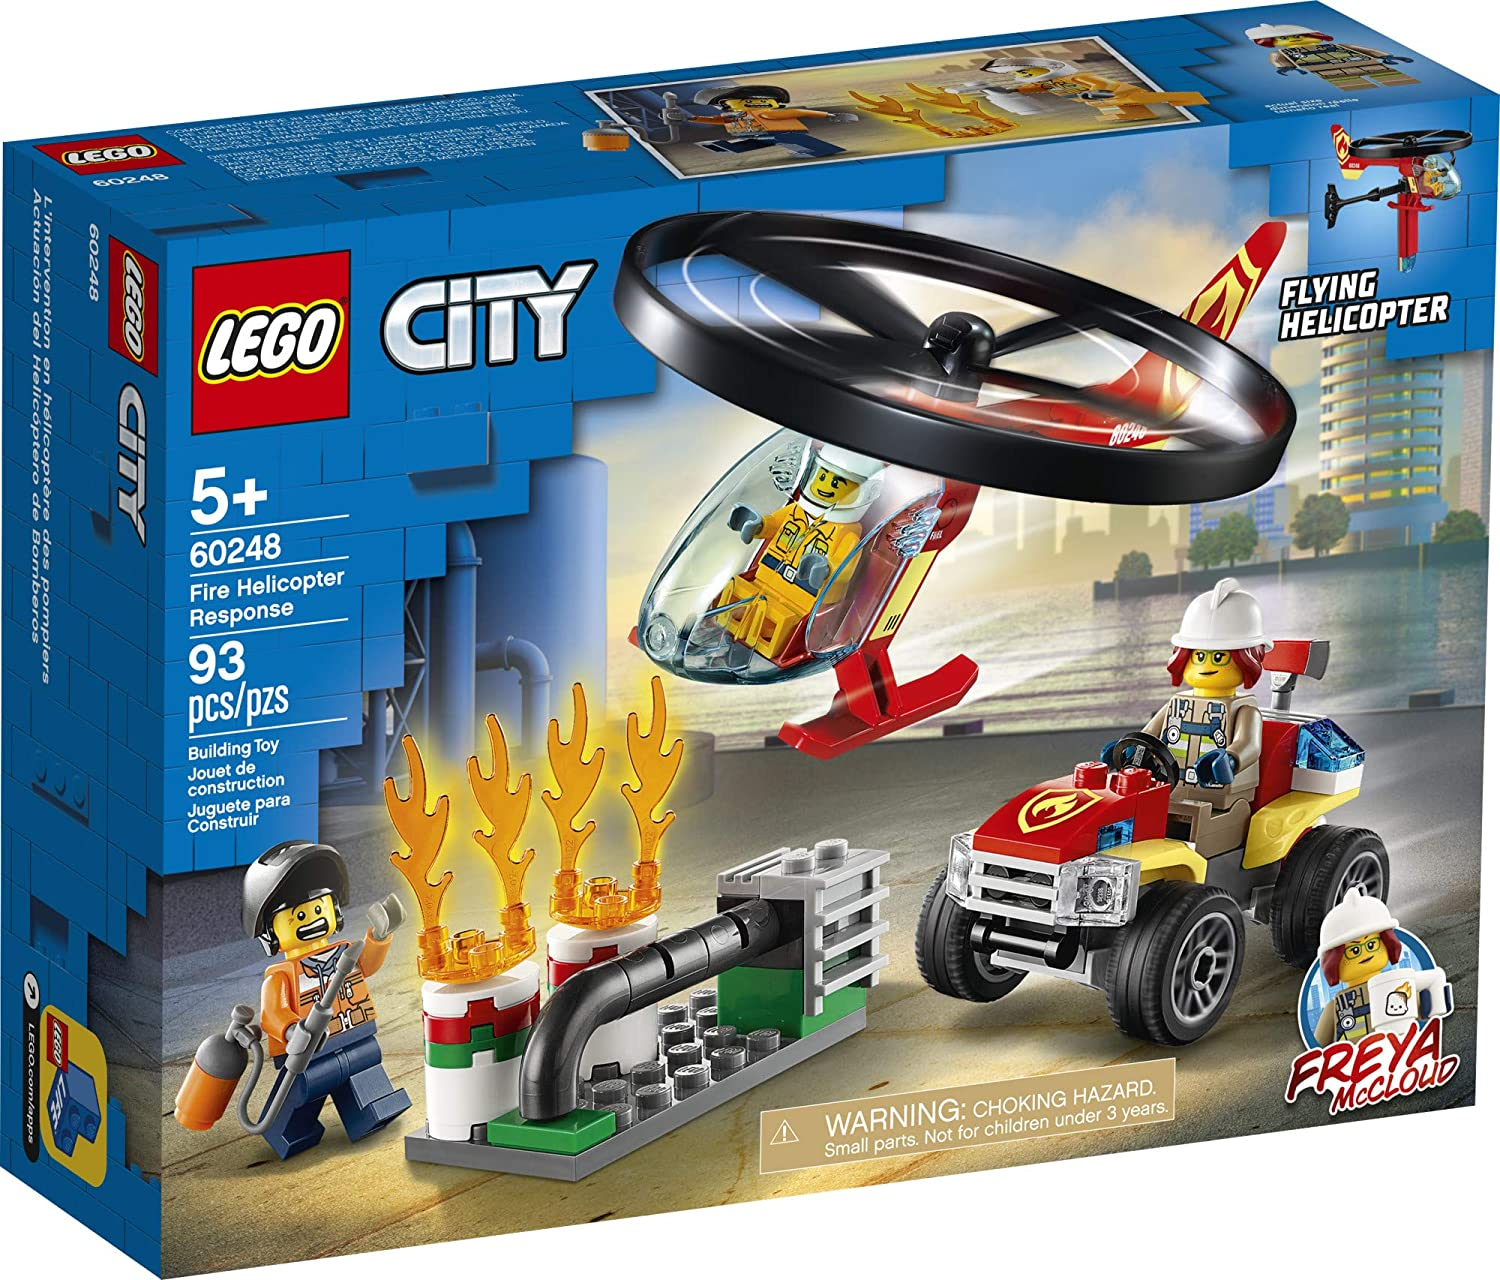 93 Pieces LEGO City Fire Helicopter Response 60248 Firefighter Toy Fun Building Set for Kids New 2020